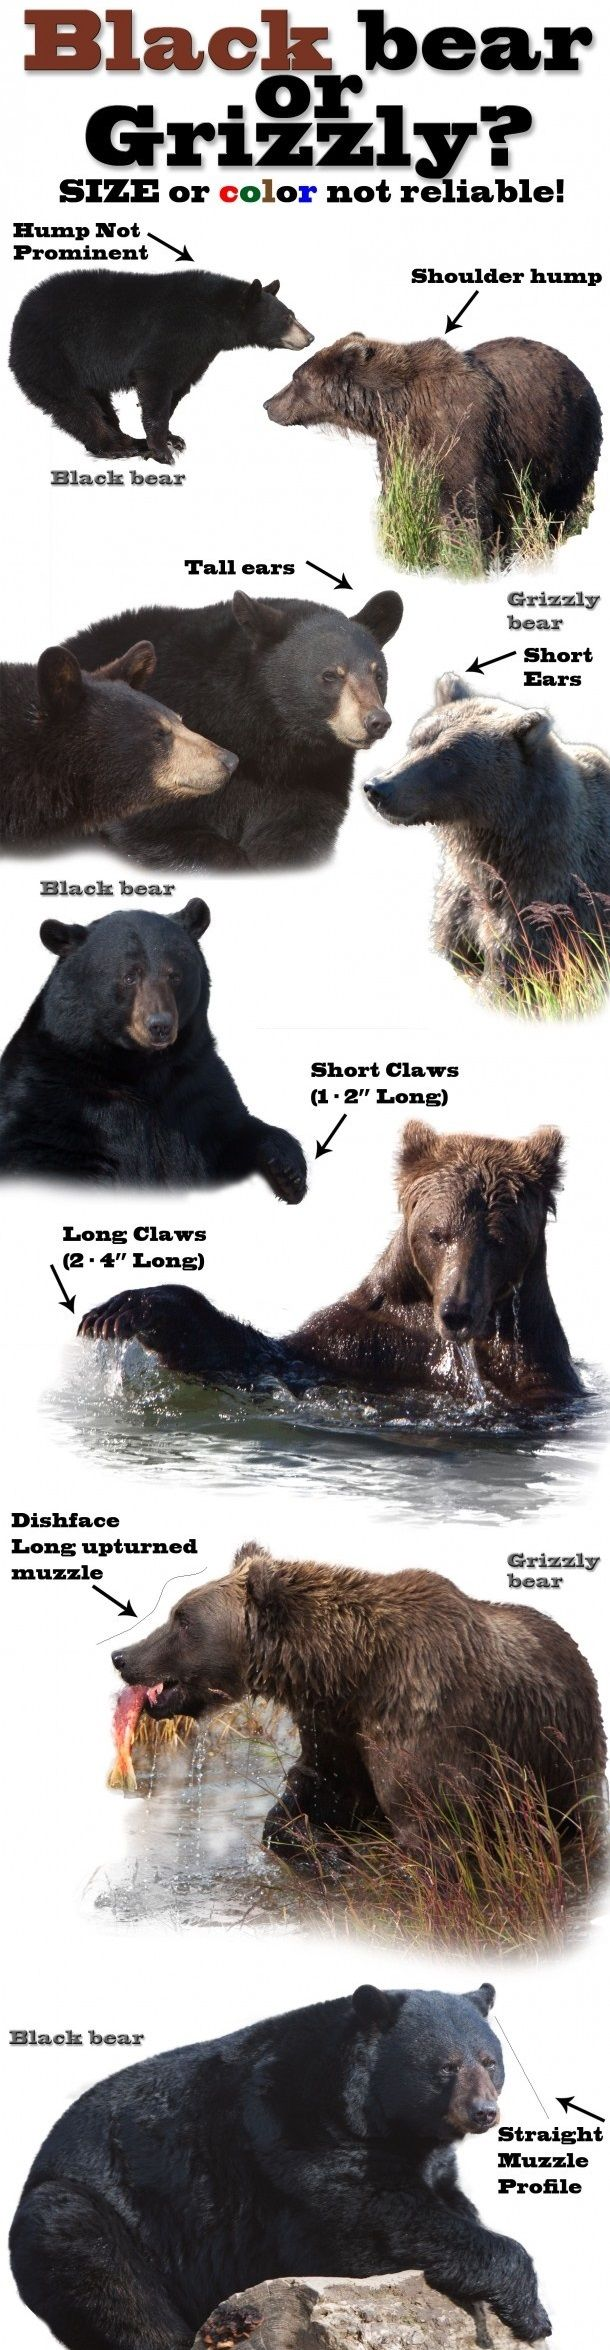 Grizzly vs. Black Bear - Which is it?